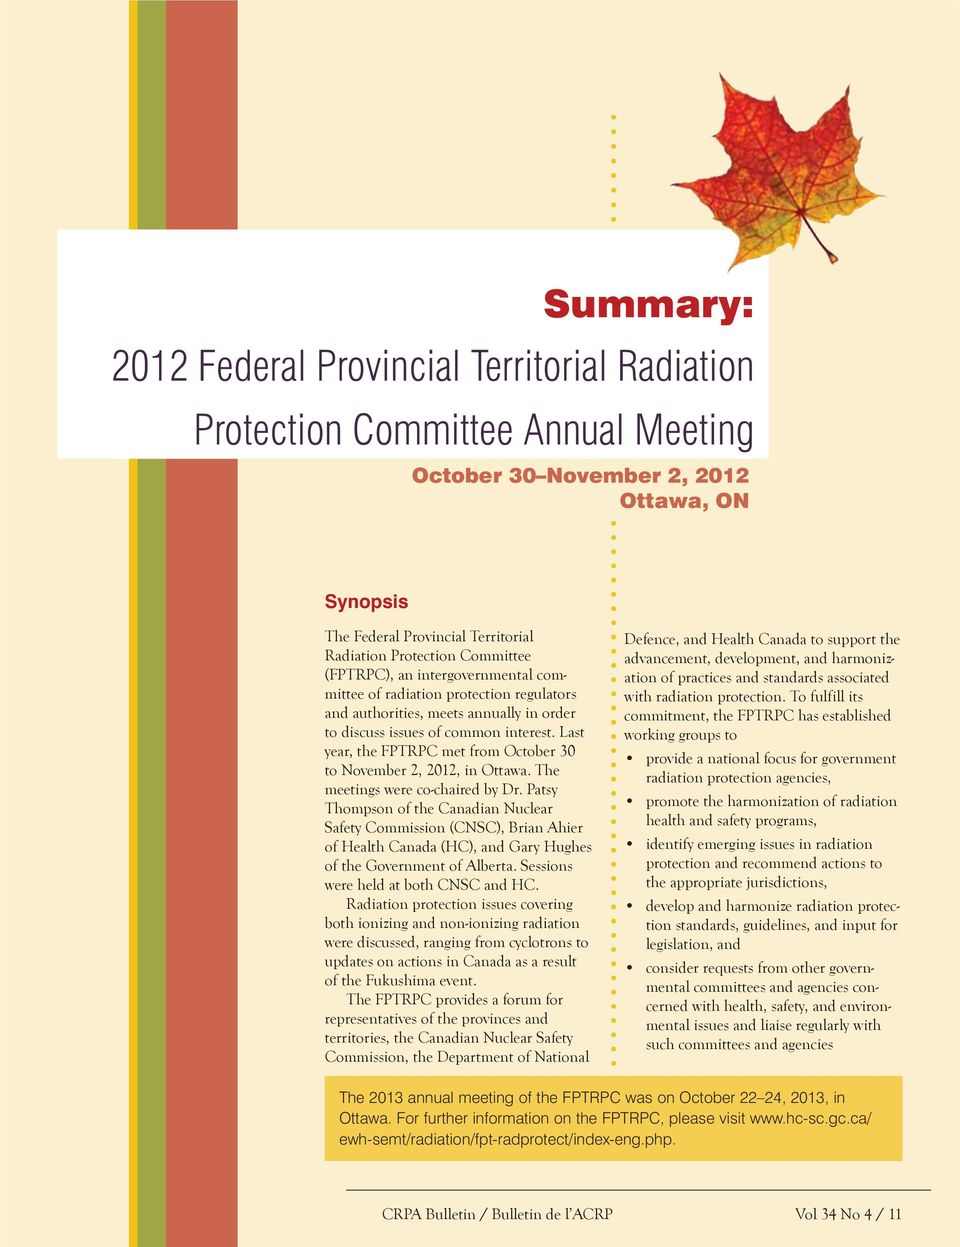 Last year, the FPTRPC met from October 30 to November 2, 2012, in Ottawa. The meetings were co-chaired by Dr.